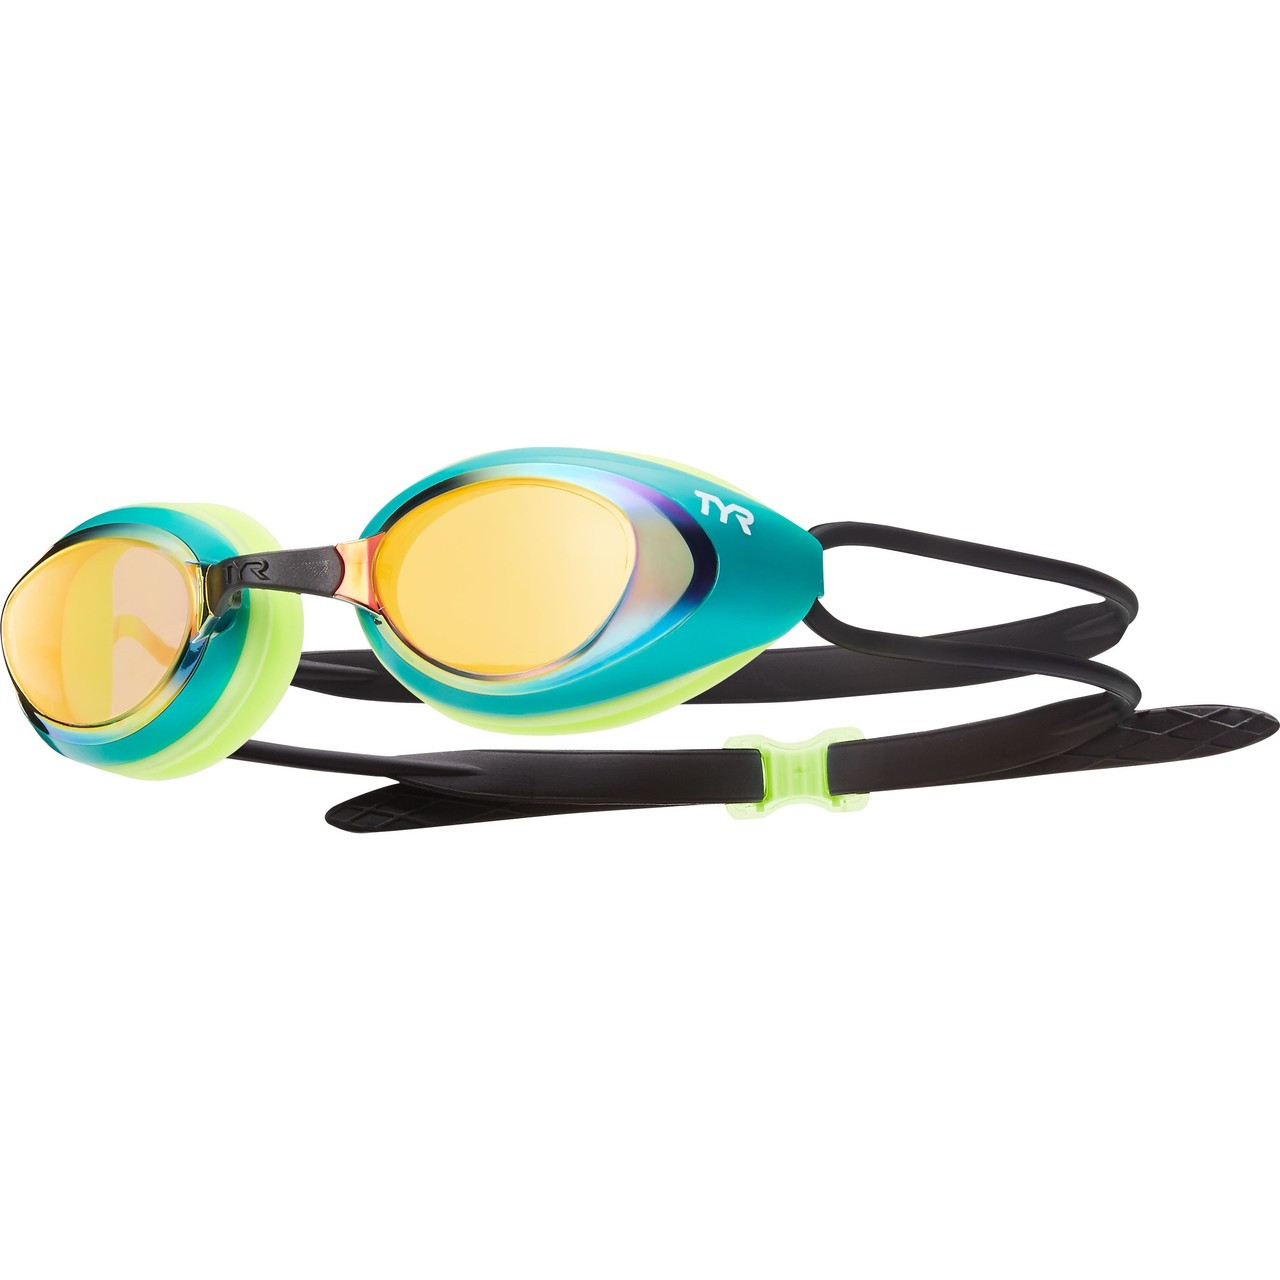 TYR Black Hawk Mirrored Racing Goggle - 2019 price